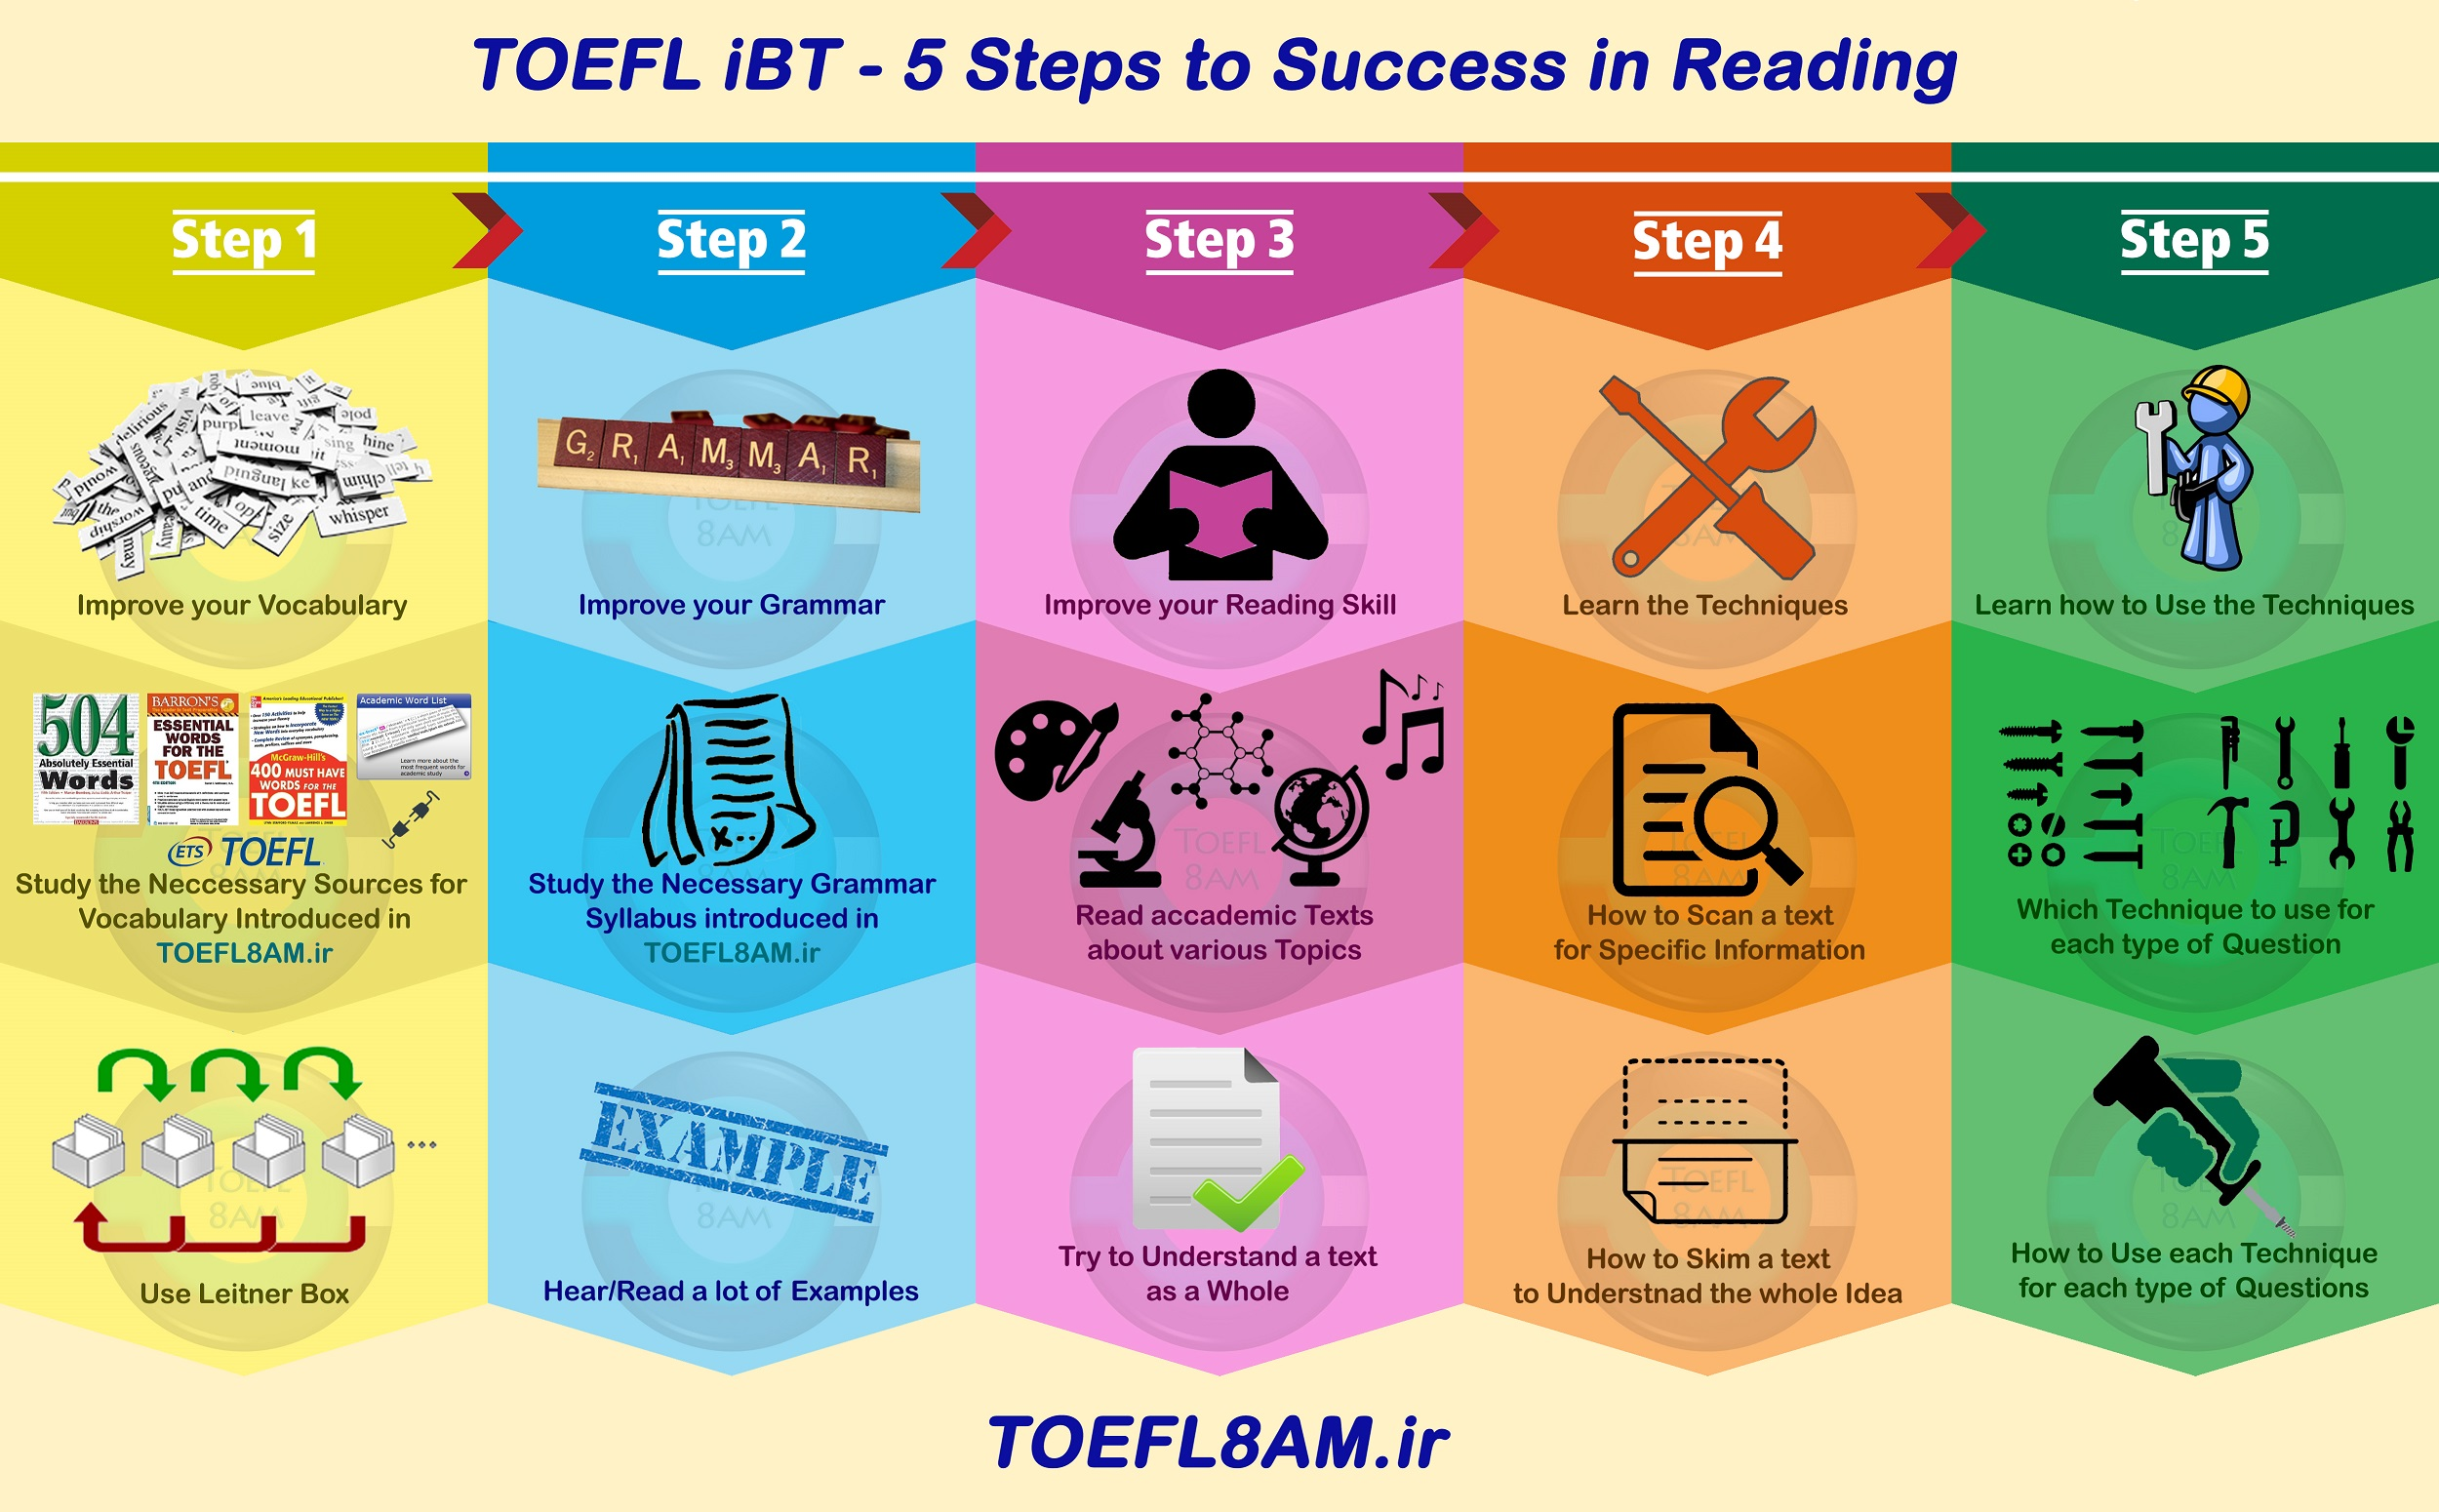 5 steps to success in TOEFL iBT Reading